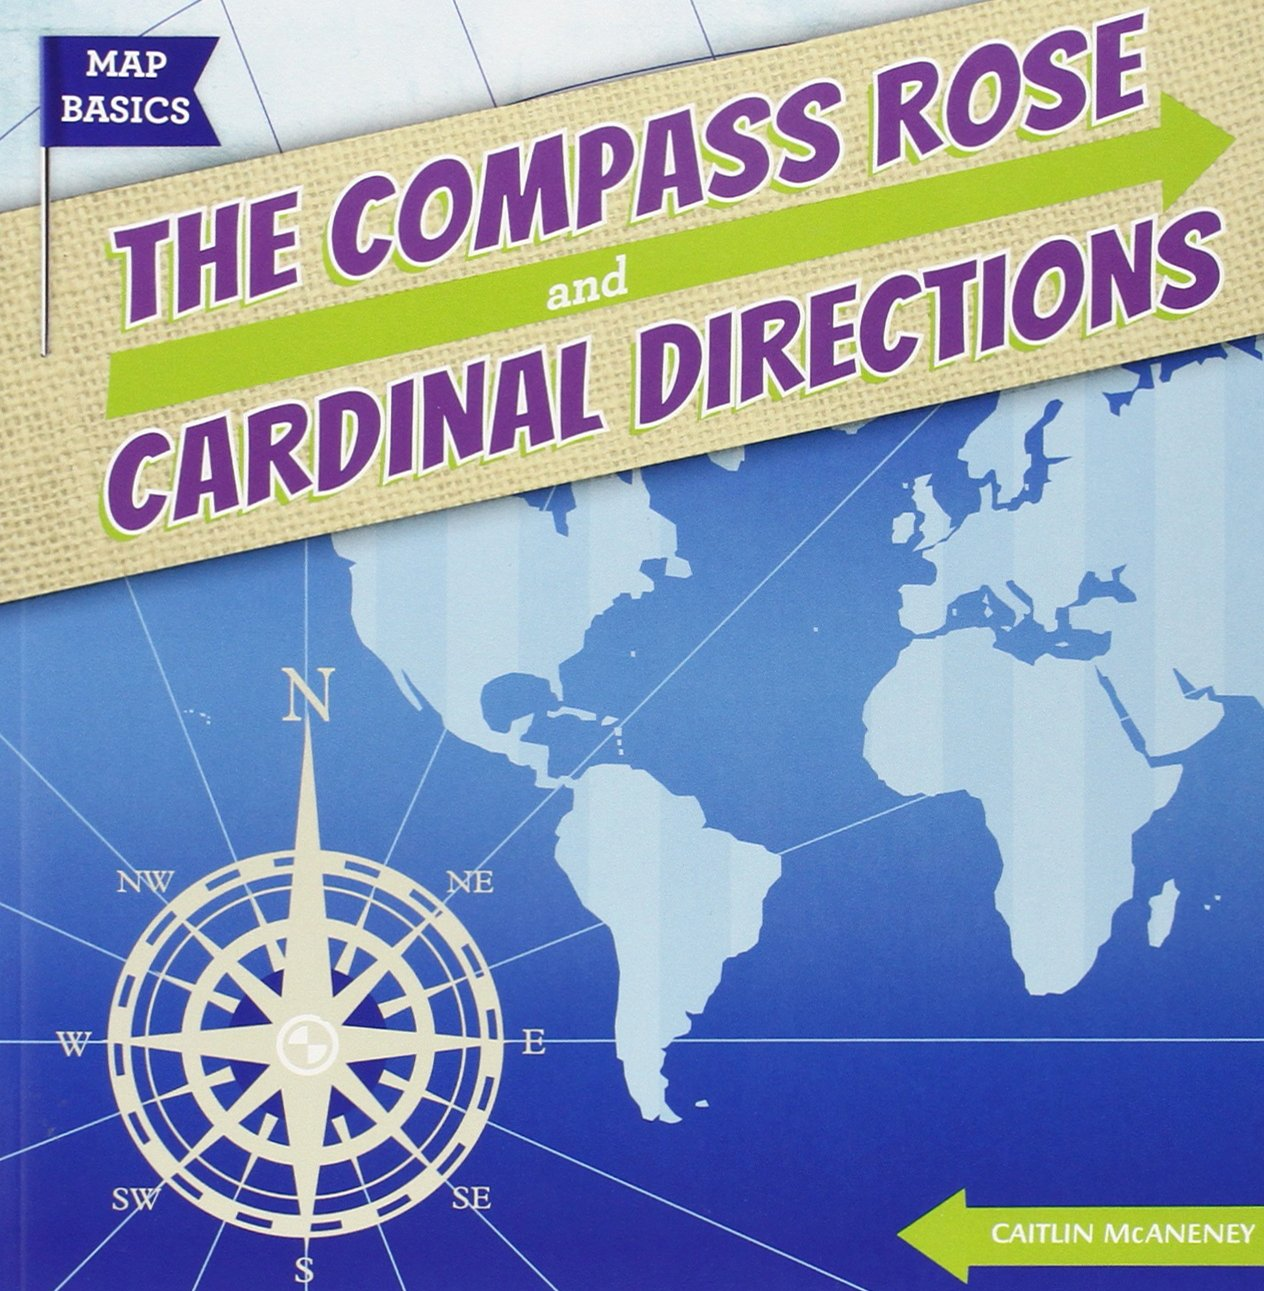 The Comp Rose and Cardinal Directions (Map Basics ... Cardinal Directions On A Map on bodies of water on a map, automatic watch, using a scale on a map, parallels on a map, human features on a map, lines of longitude on a map, north magnetic pole, south on a map, north on a map, title on a map, easting and northing, atlantic provinces on a map, quartz crisis, geographic coordinate system, axis on a map, locator on a map, relief on a map, compass points on a map, relative direction, time zones on a map, windward and leeward, geography on a map, compass rose on a map, natural resources on a map, spring drive, map on a map, boxing the compass, key/legend on a map, grid system on a map, magnetic declination,